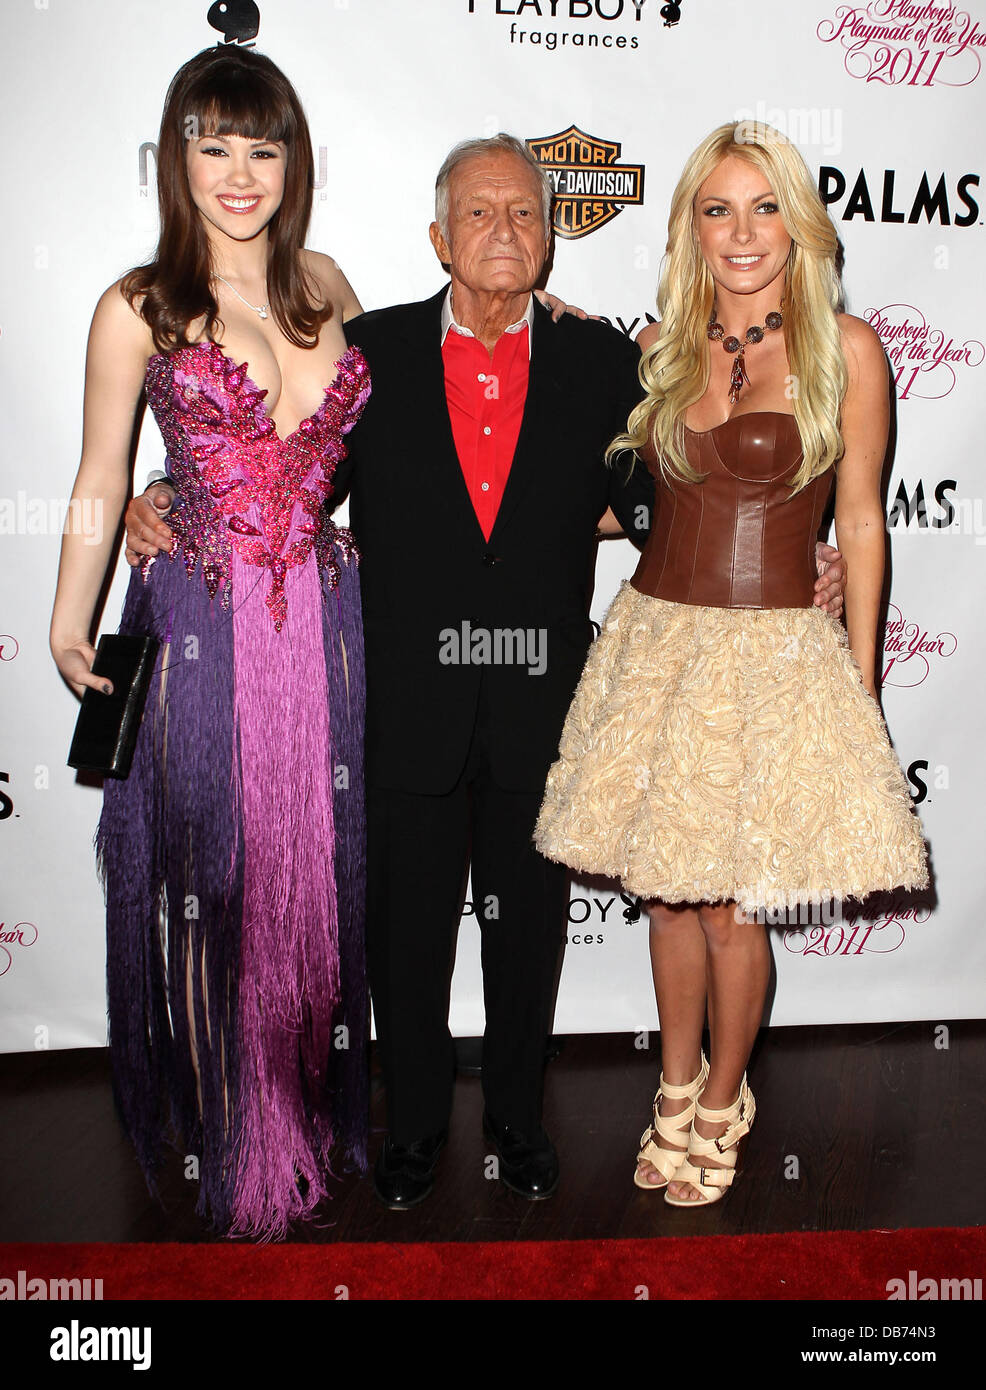 Claire Sinclair, Hugh Hefner, Crystal Harris Playboys ...